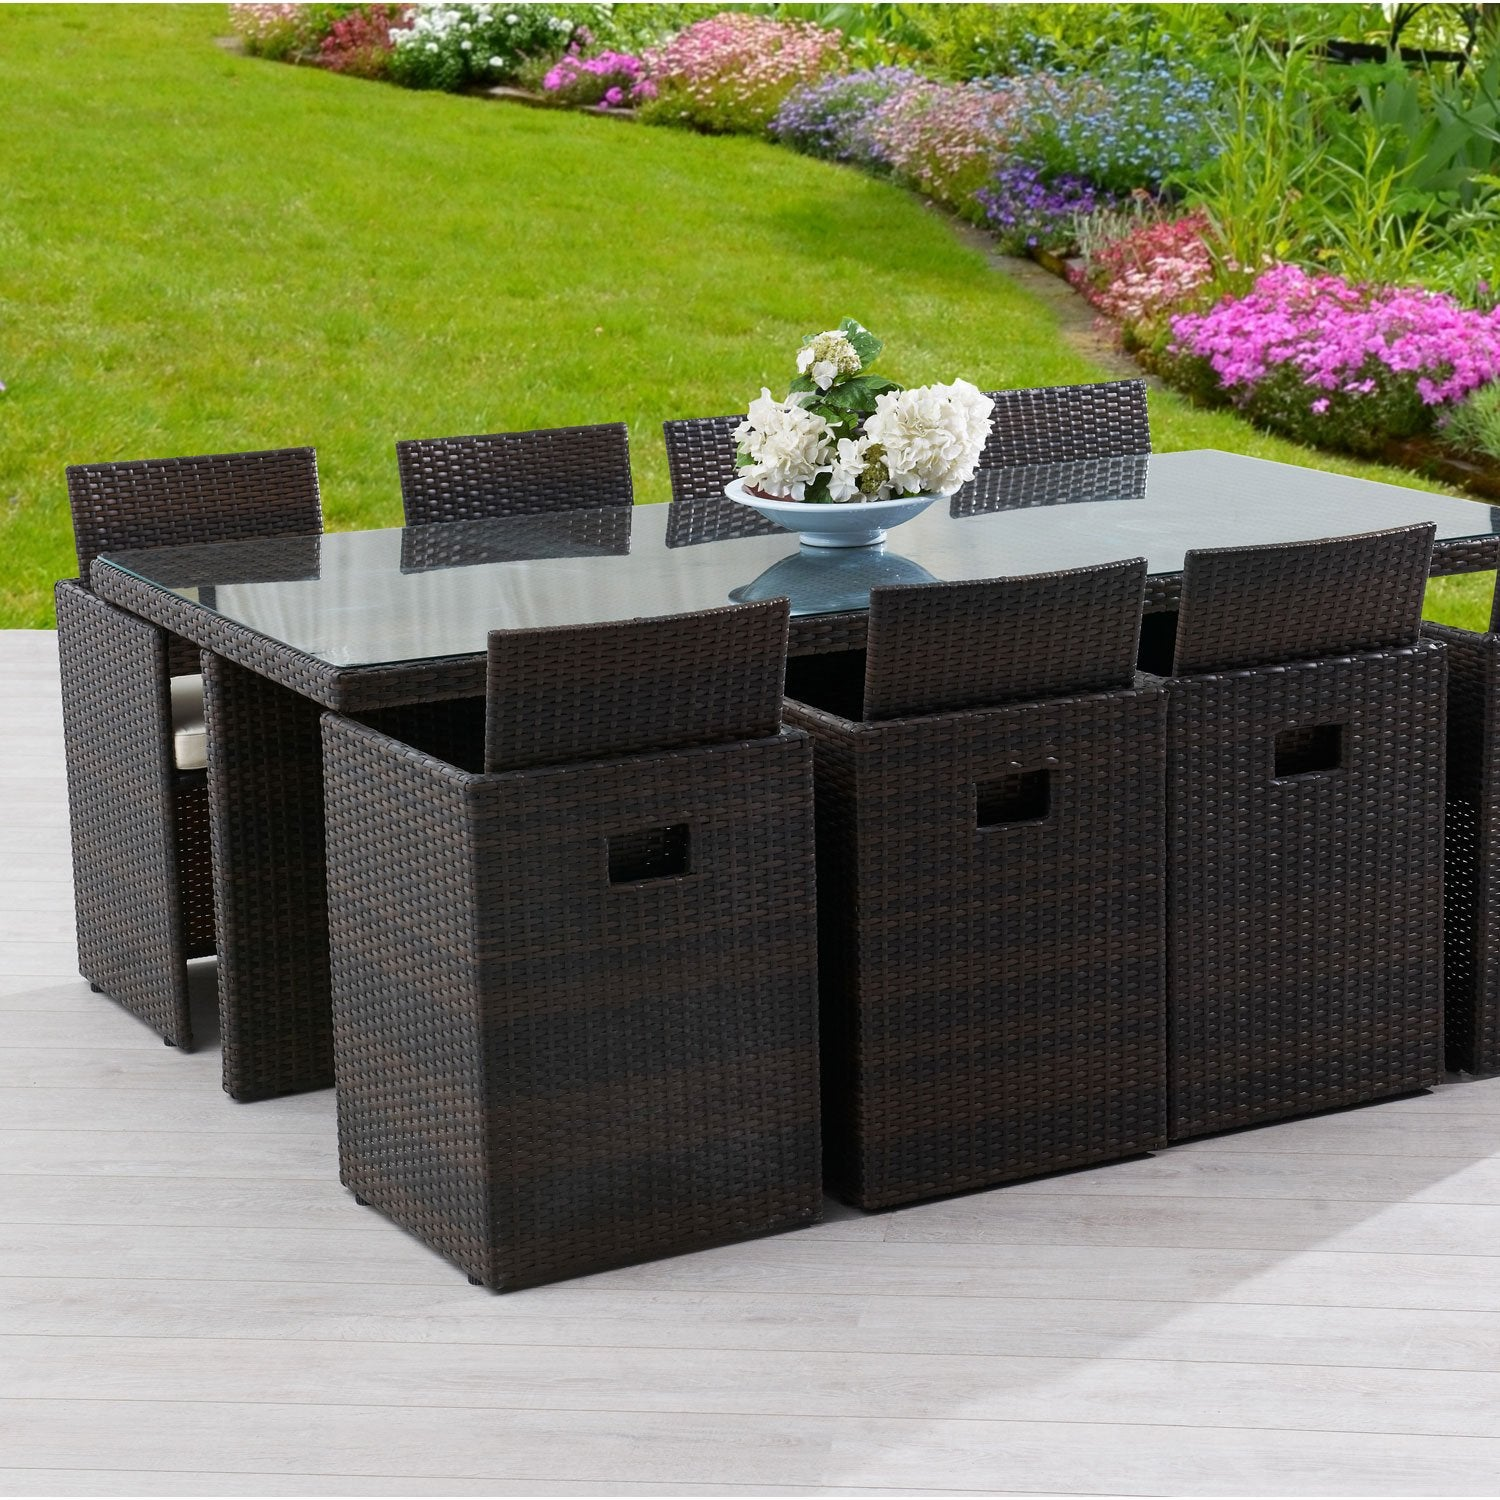 Salon de jardin encastrable r sine tress e marron 1 table Table de jardin en resine pas cher